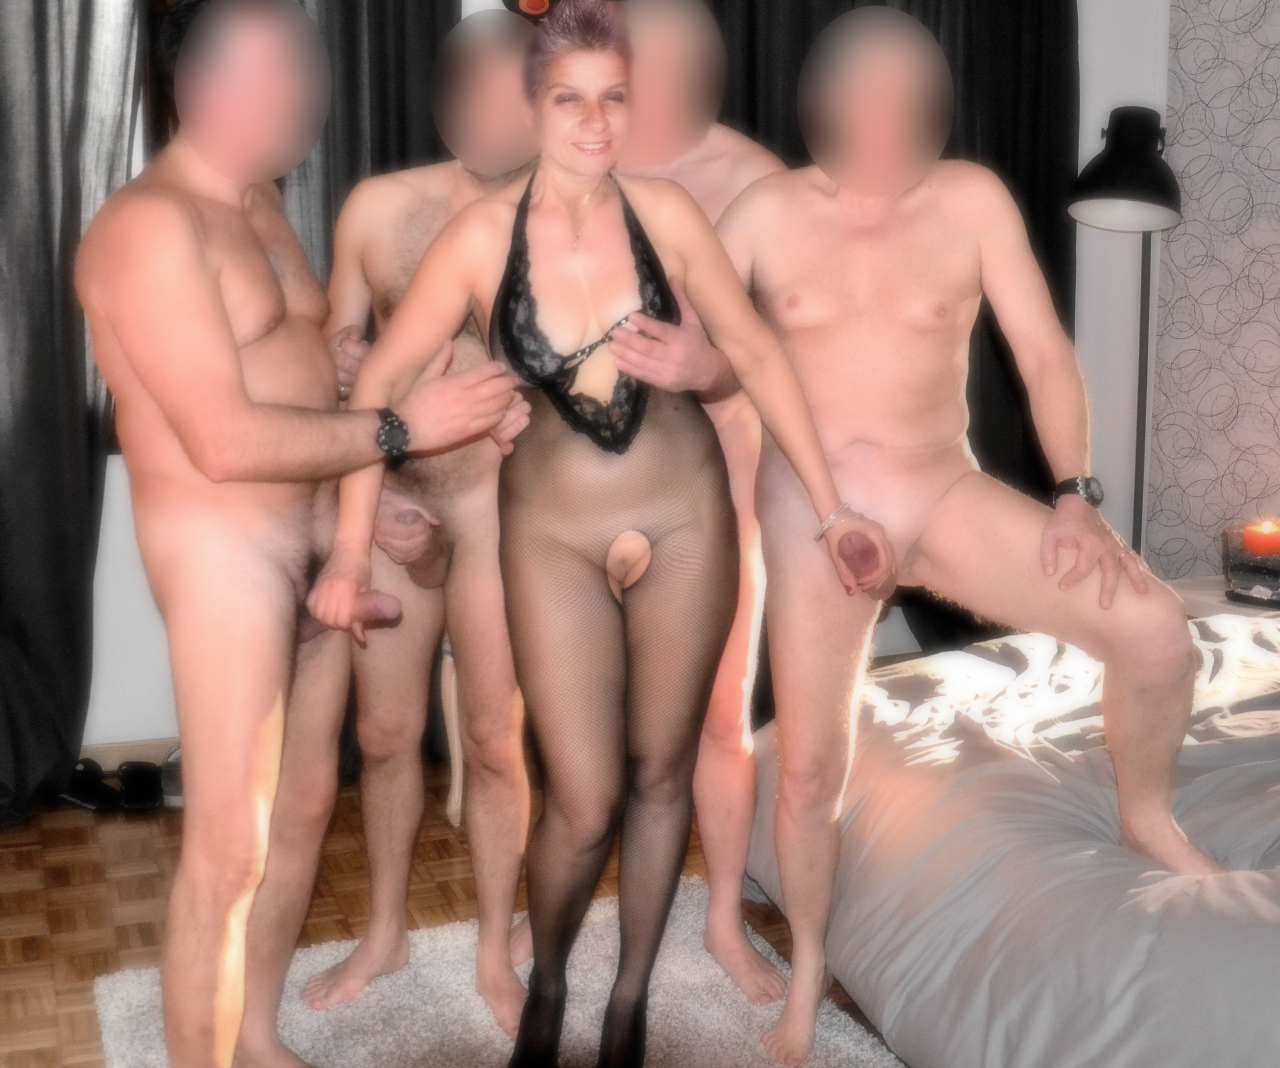 Hot wife gangbang party